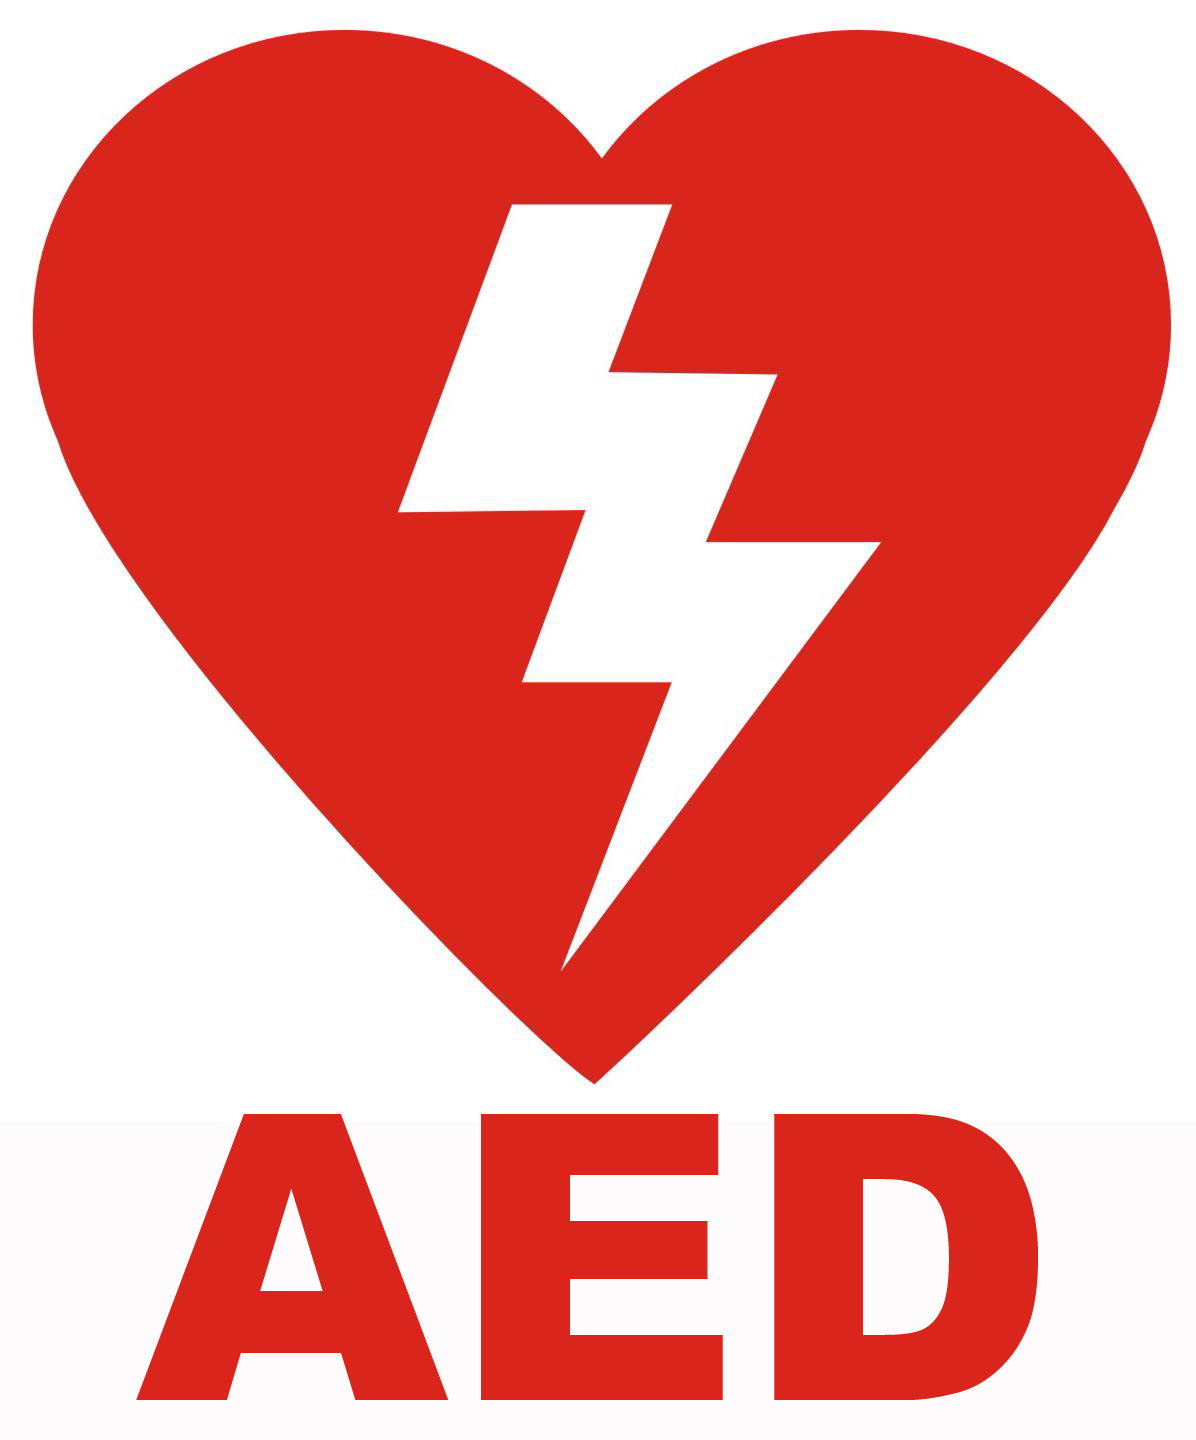 Aedcpr refresher lexington presbyterian church easy to use and come with spoken instructions also the basics of cpr cardio pulmonary resuscitation will be reviewed buycottarizona Images